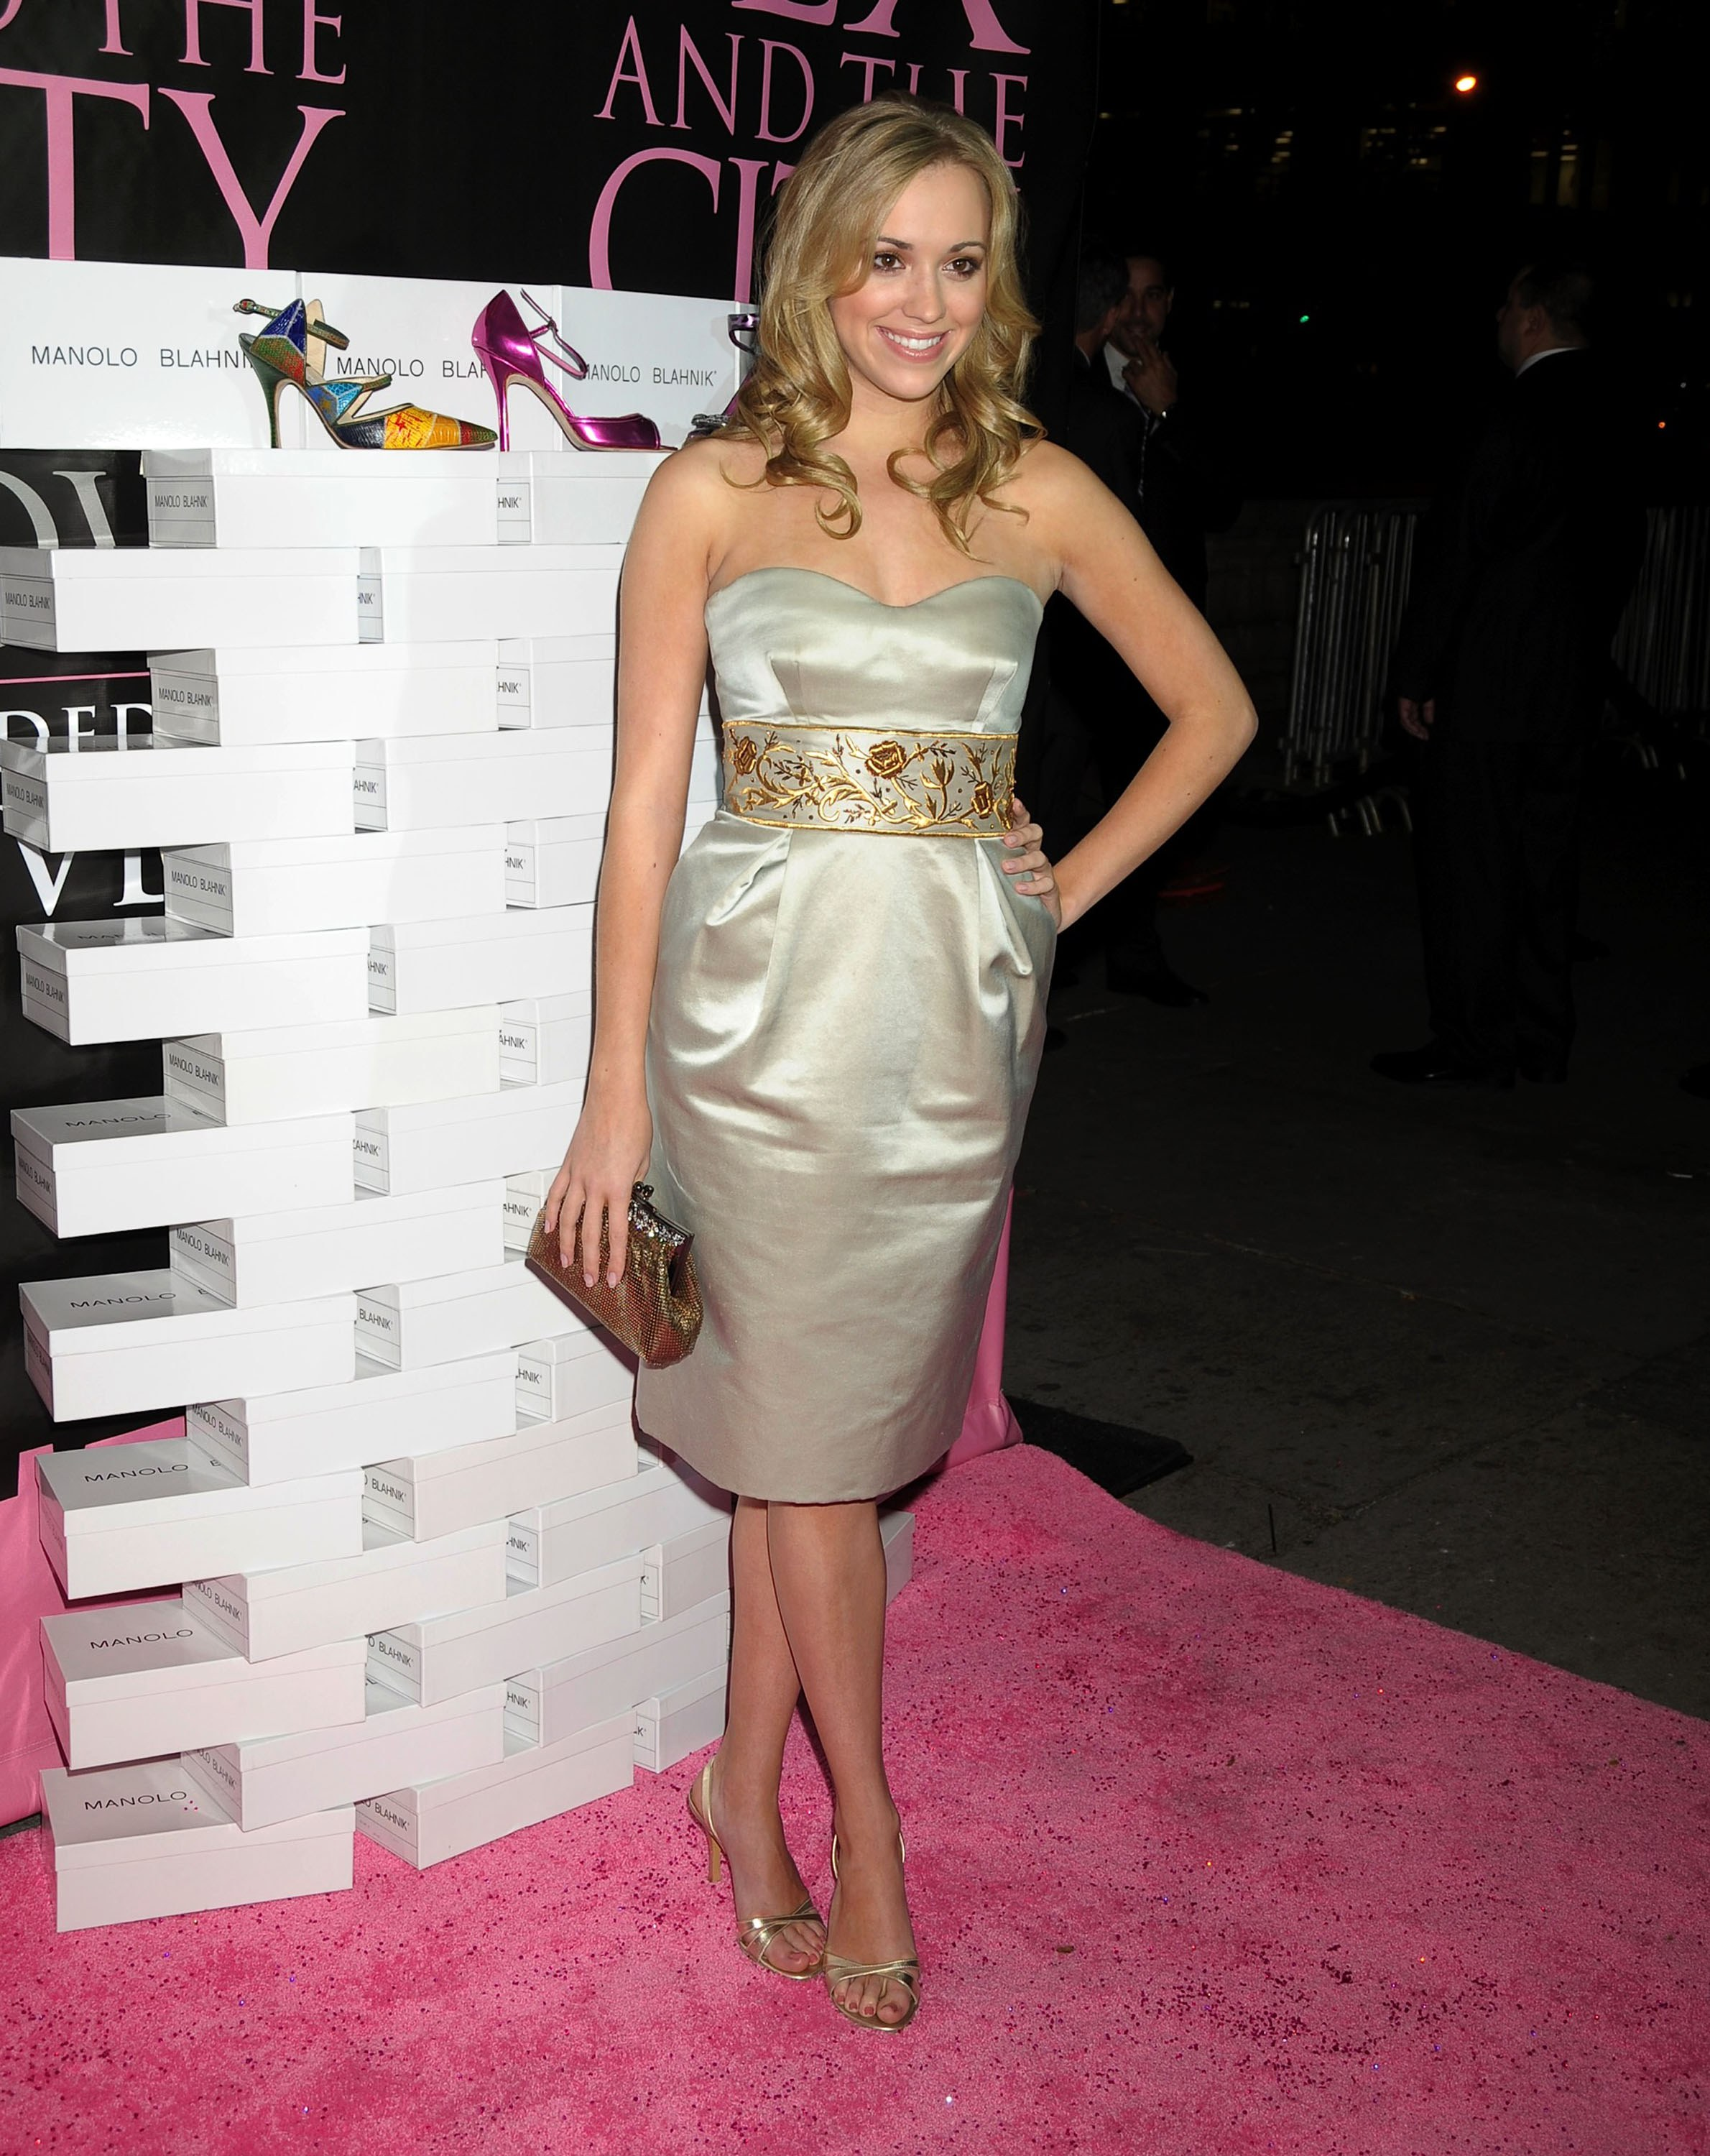 26651_Andrea_Bowen_-_9Sex_and_the_City-_The_Movie2_DVD_launch_CU_ISA_0003_122_250lo.jpg